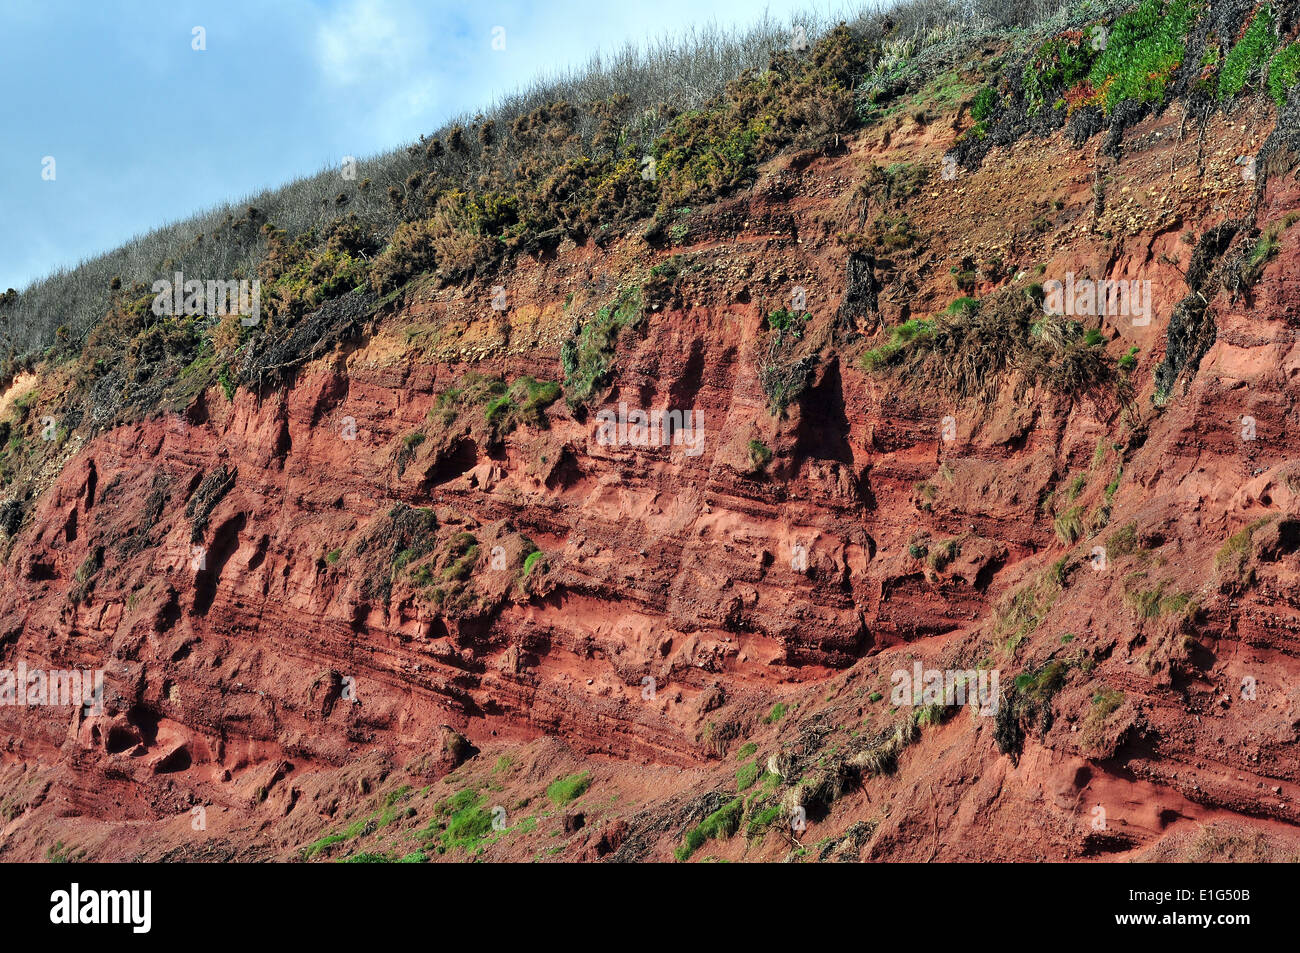 A cliff section of Old Red Sandstone near Langstone Rock, Dawlish, South Devon - showing Devonian stratigraphy. - Stock Image